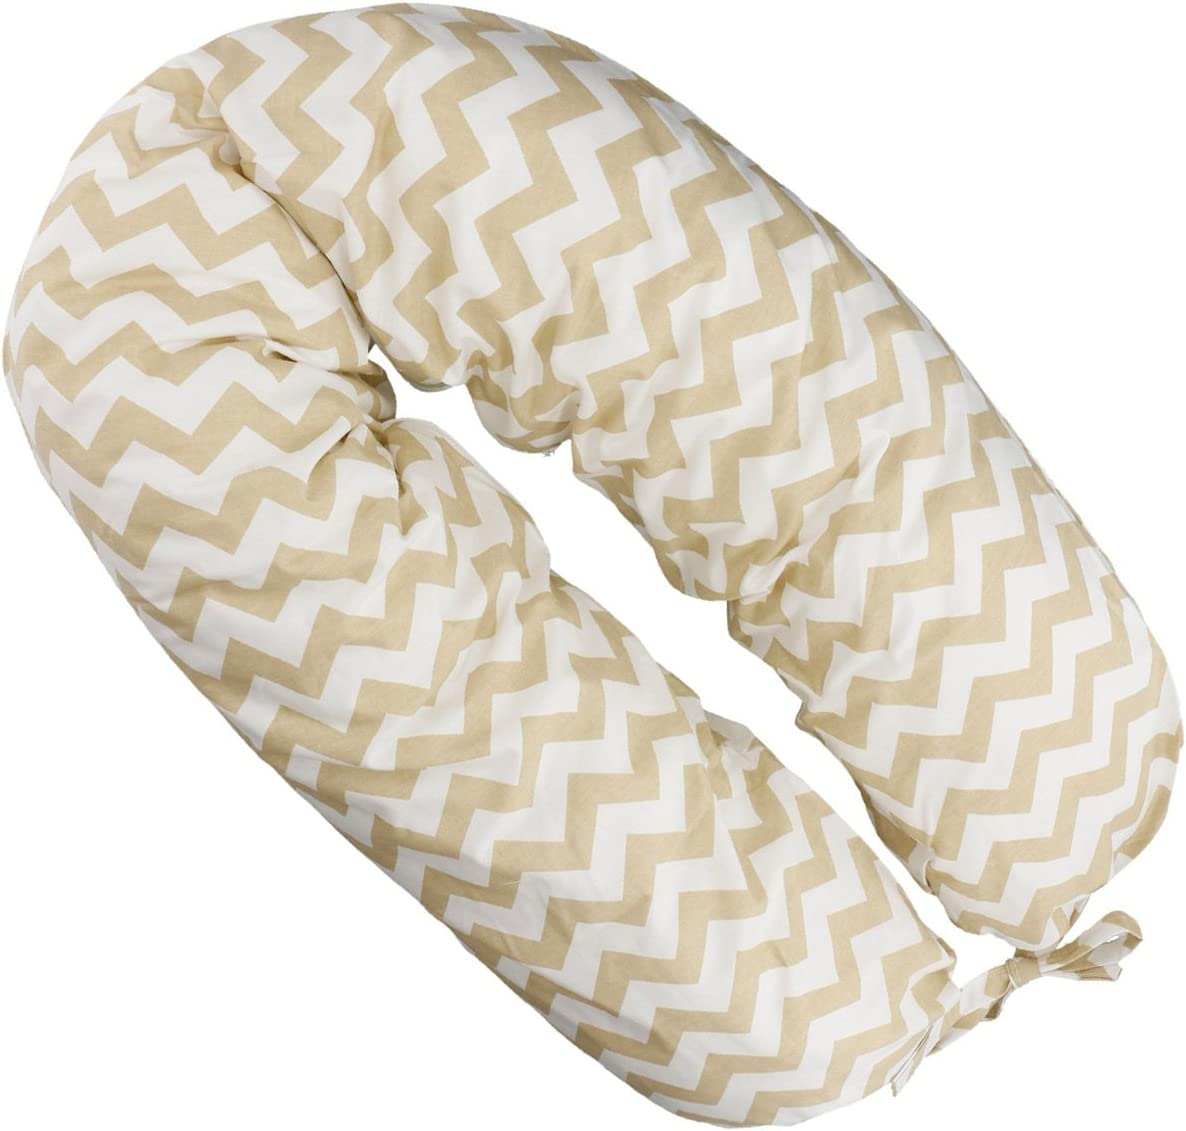 Babys Comfort MATERNITY PILLOW with easy wash removable cover 140cm long 35